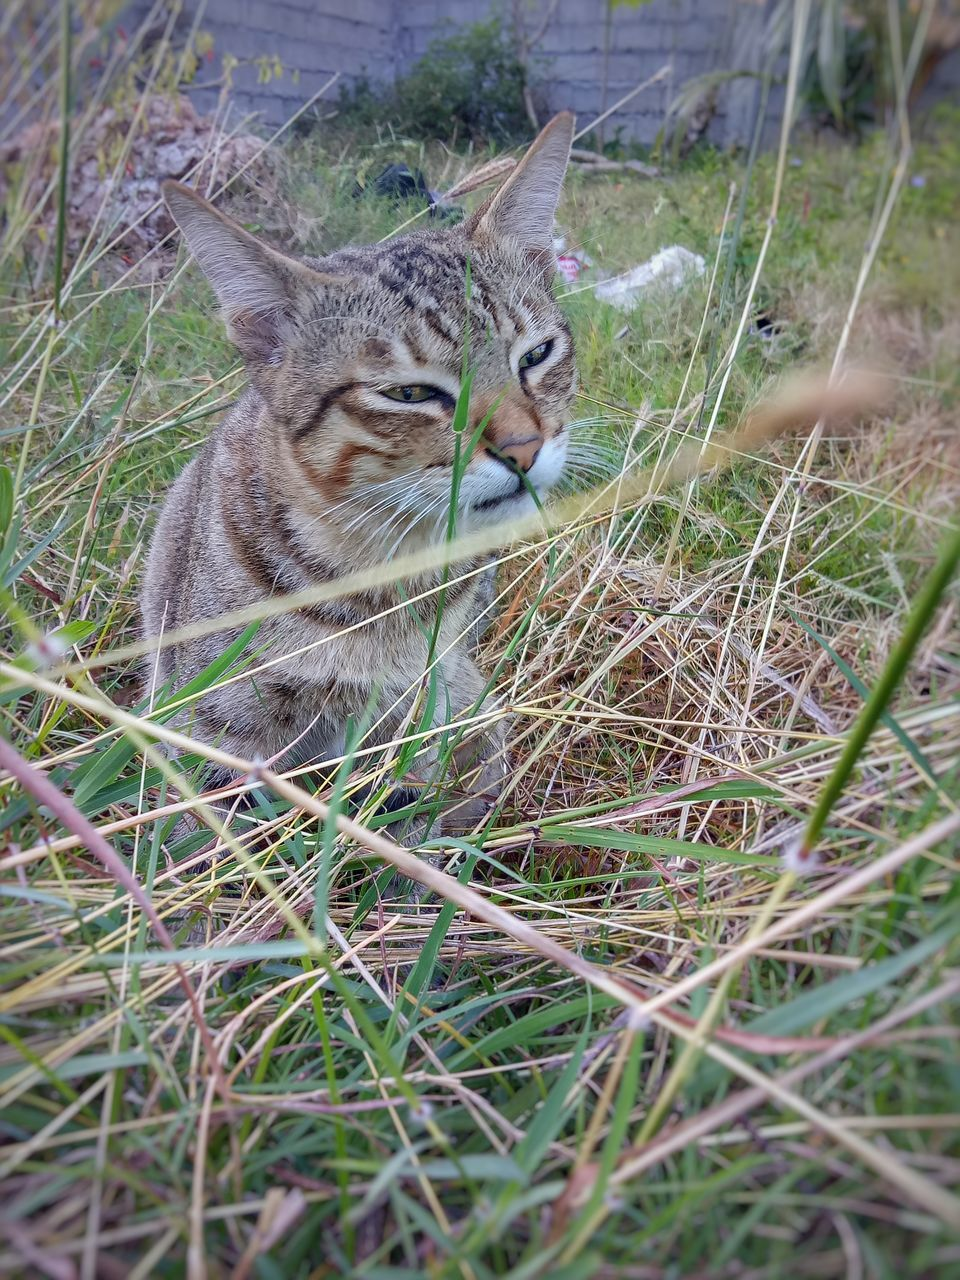 animal themes, domestic cat, one animal, mammal, feline, day, domestic animals, grass, no people, outdoors, pets, nature, close-up